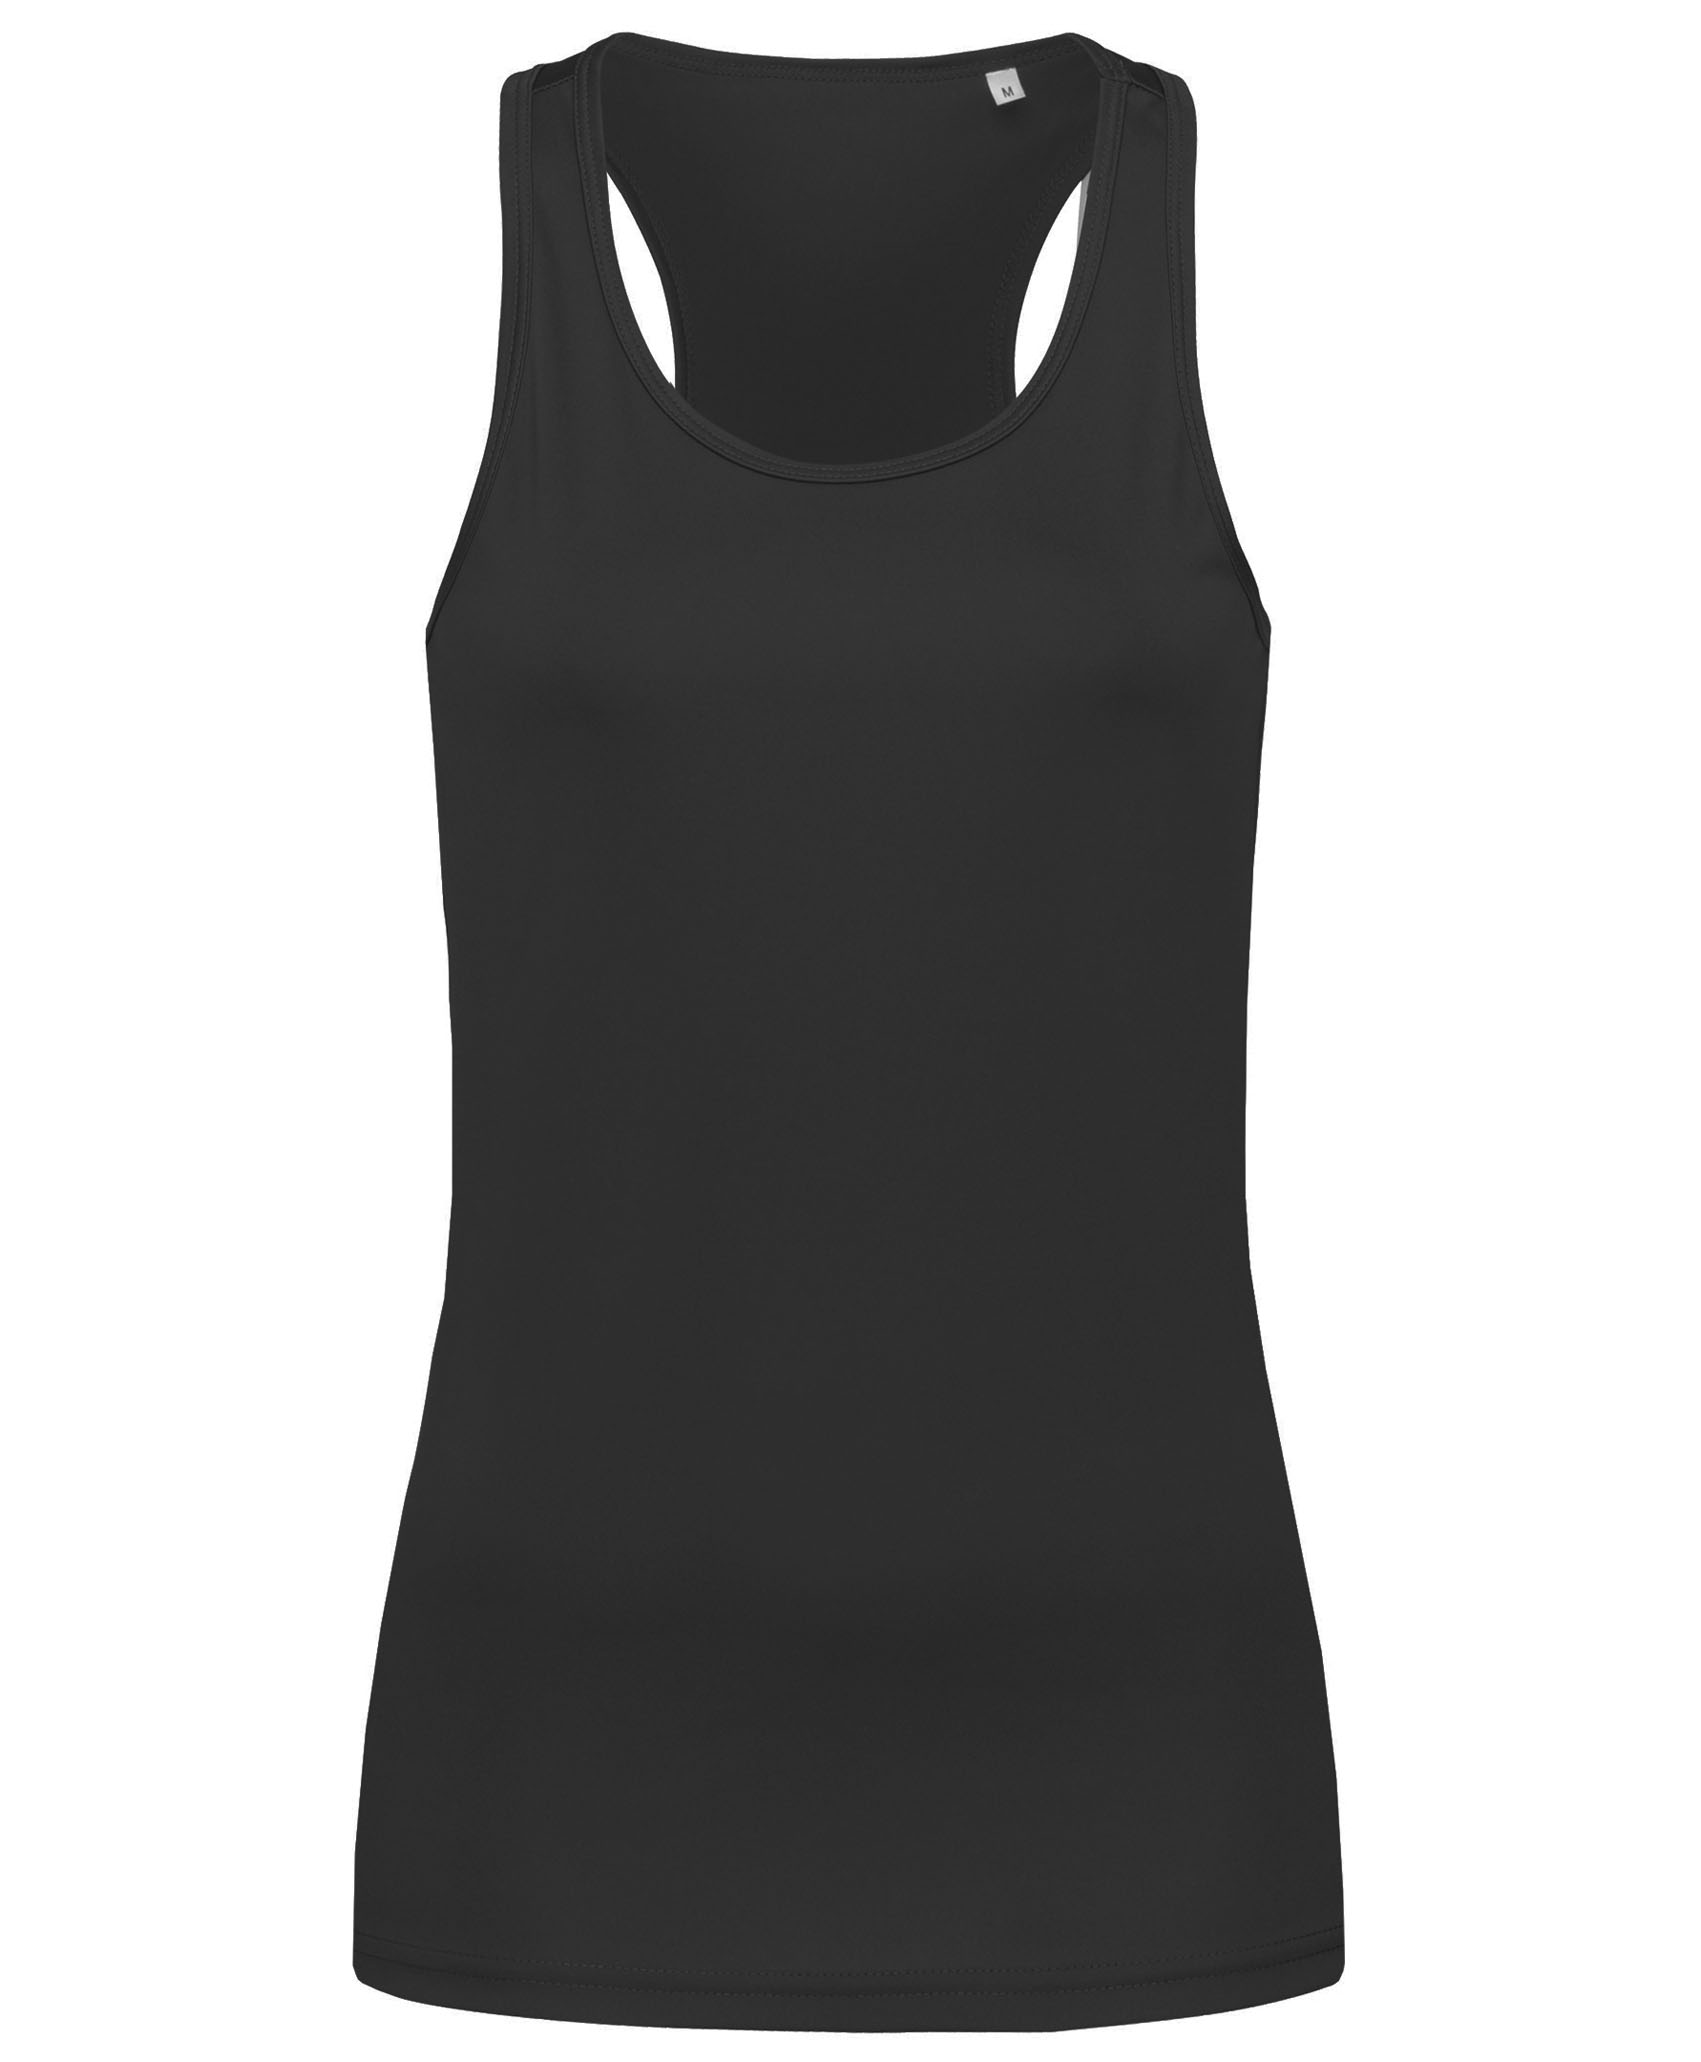 Stedman Tanktop Interlock ActiveDry for her